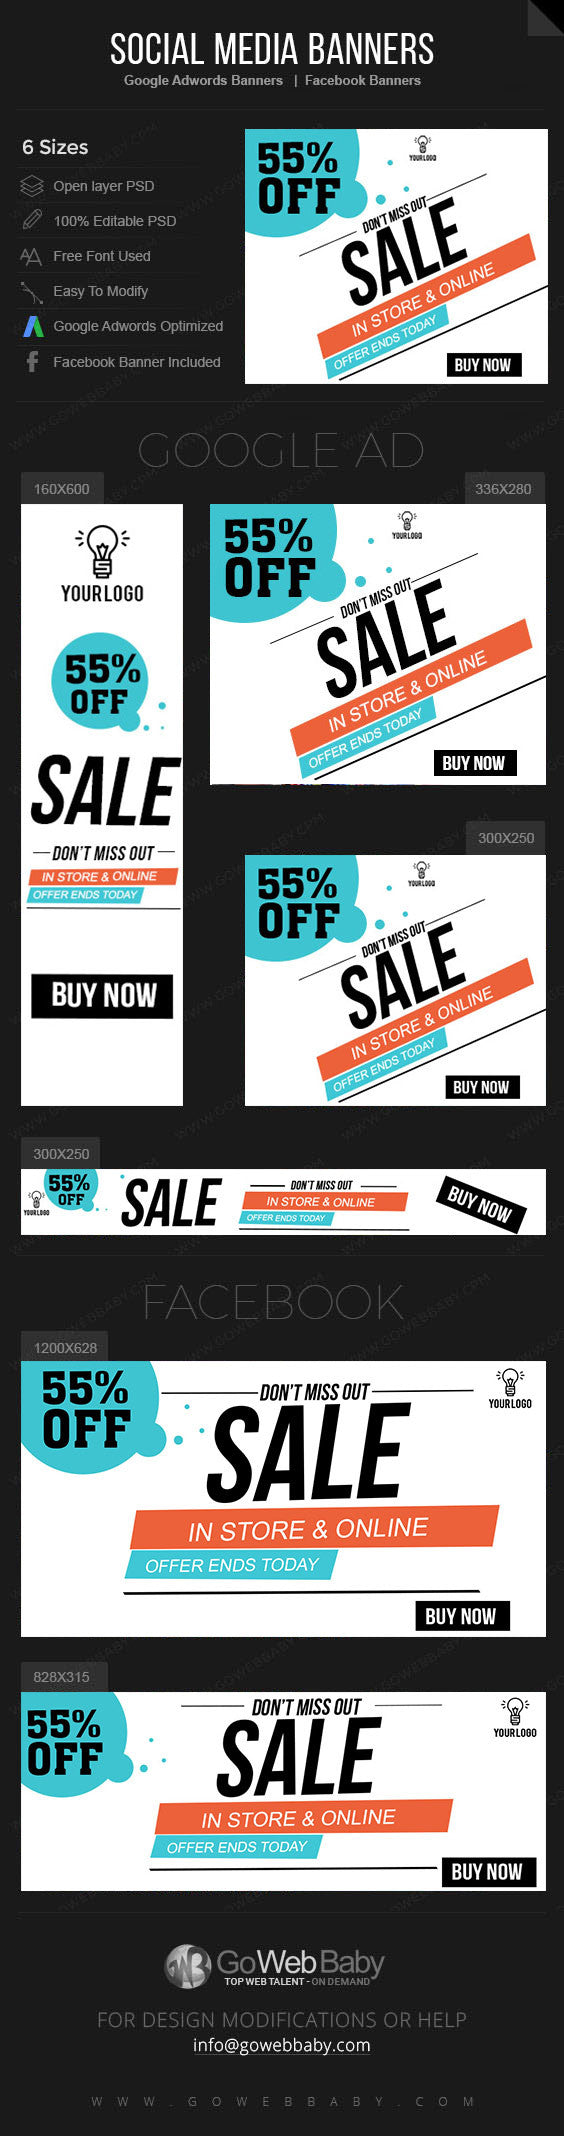 Google Adwords Display Banner with Facebook banners - Sale for  Website Marketing - GoWebBaby.Com